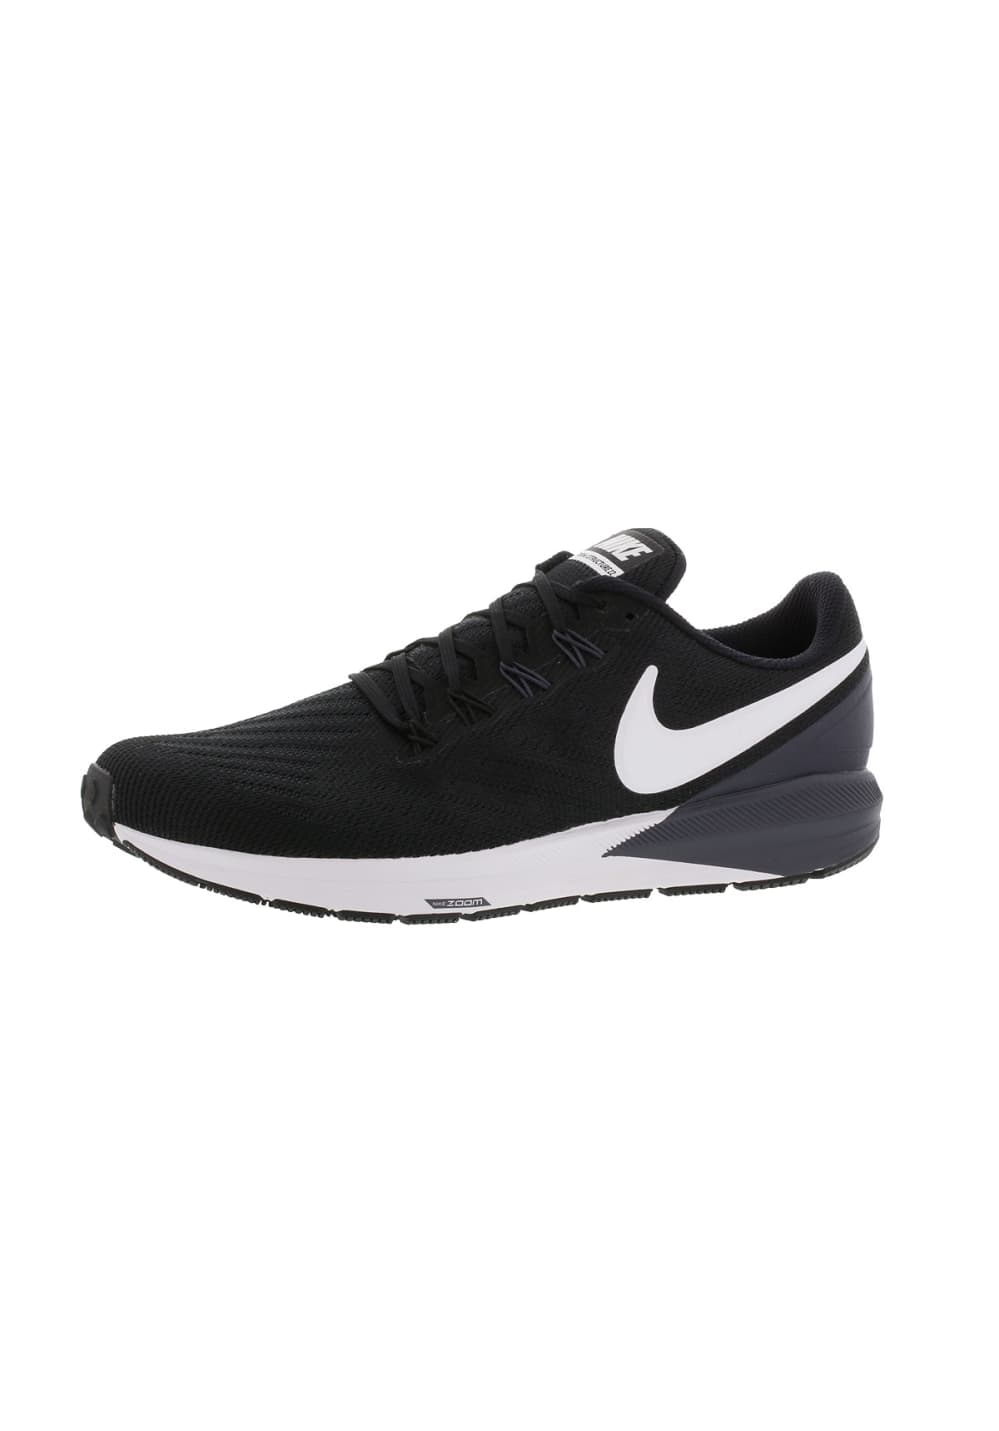 4a9909f6e5e62 Nike Air Zoom Structure 22 - Running shoes for Women - Black | 21RUN